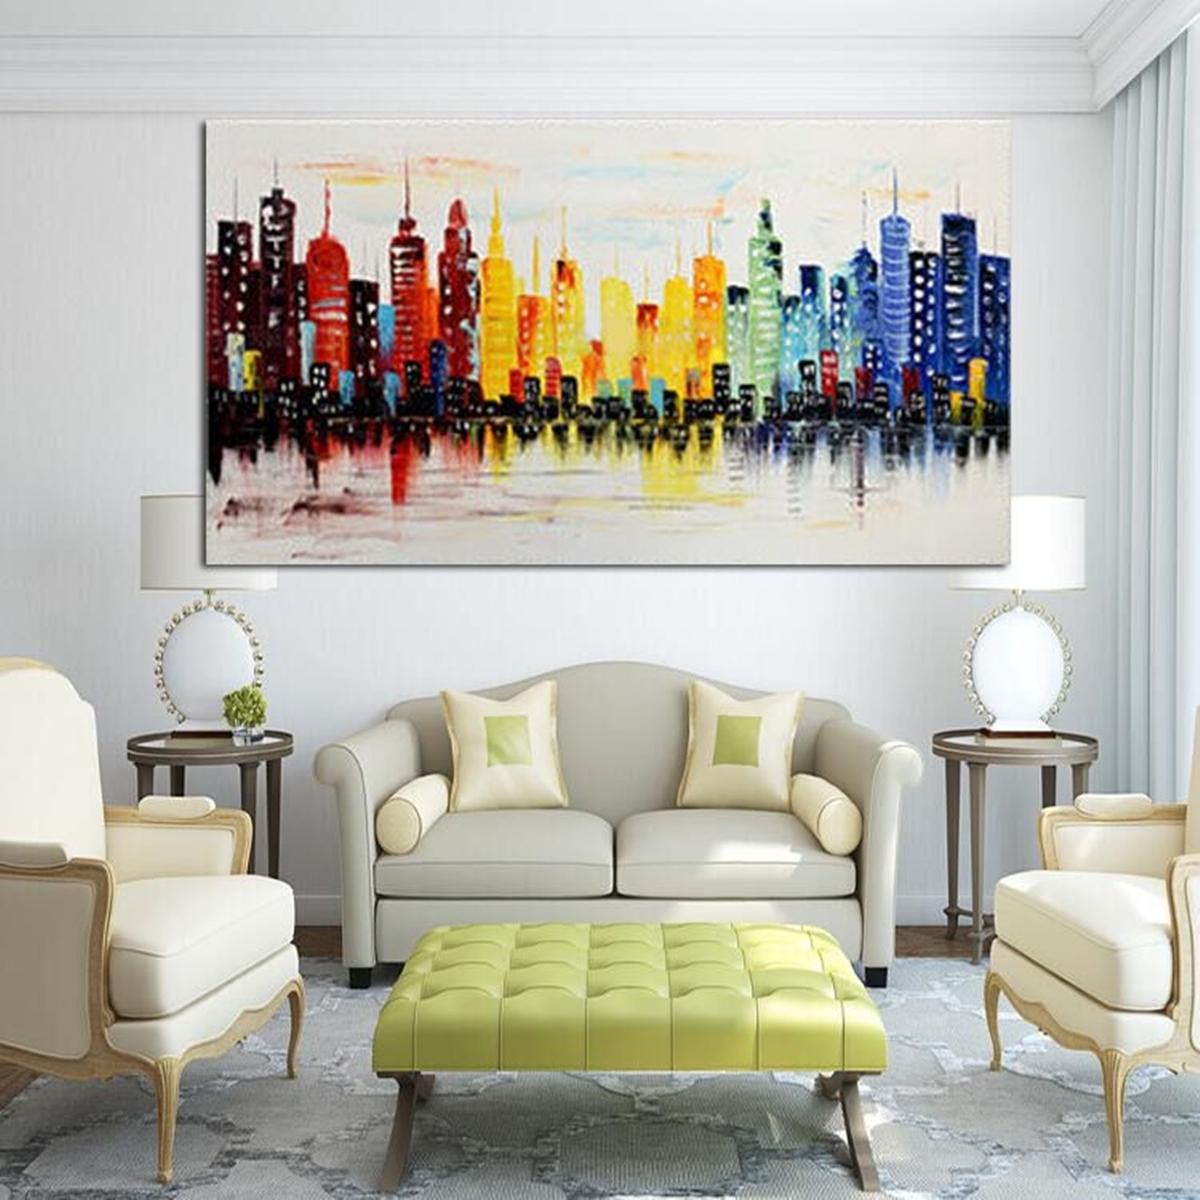 120x60cm Modern City Canvas Abstract Painting Print Living Room Art With Most Recently Released Framed Wall Art For Living Room (View 12 of 20)